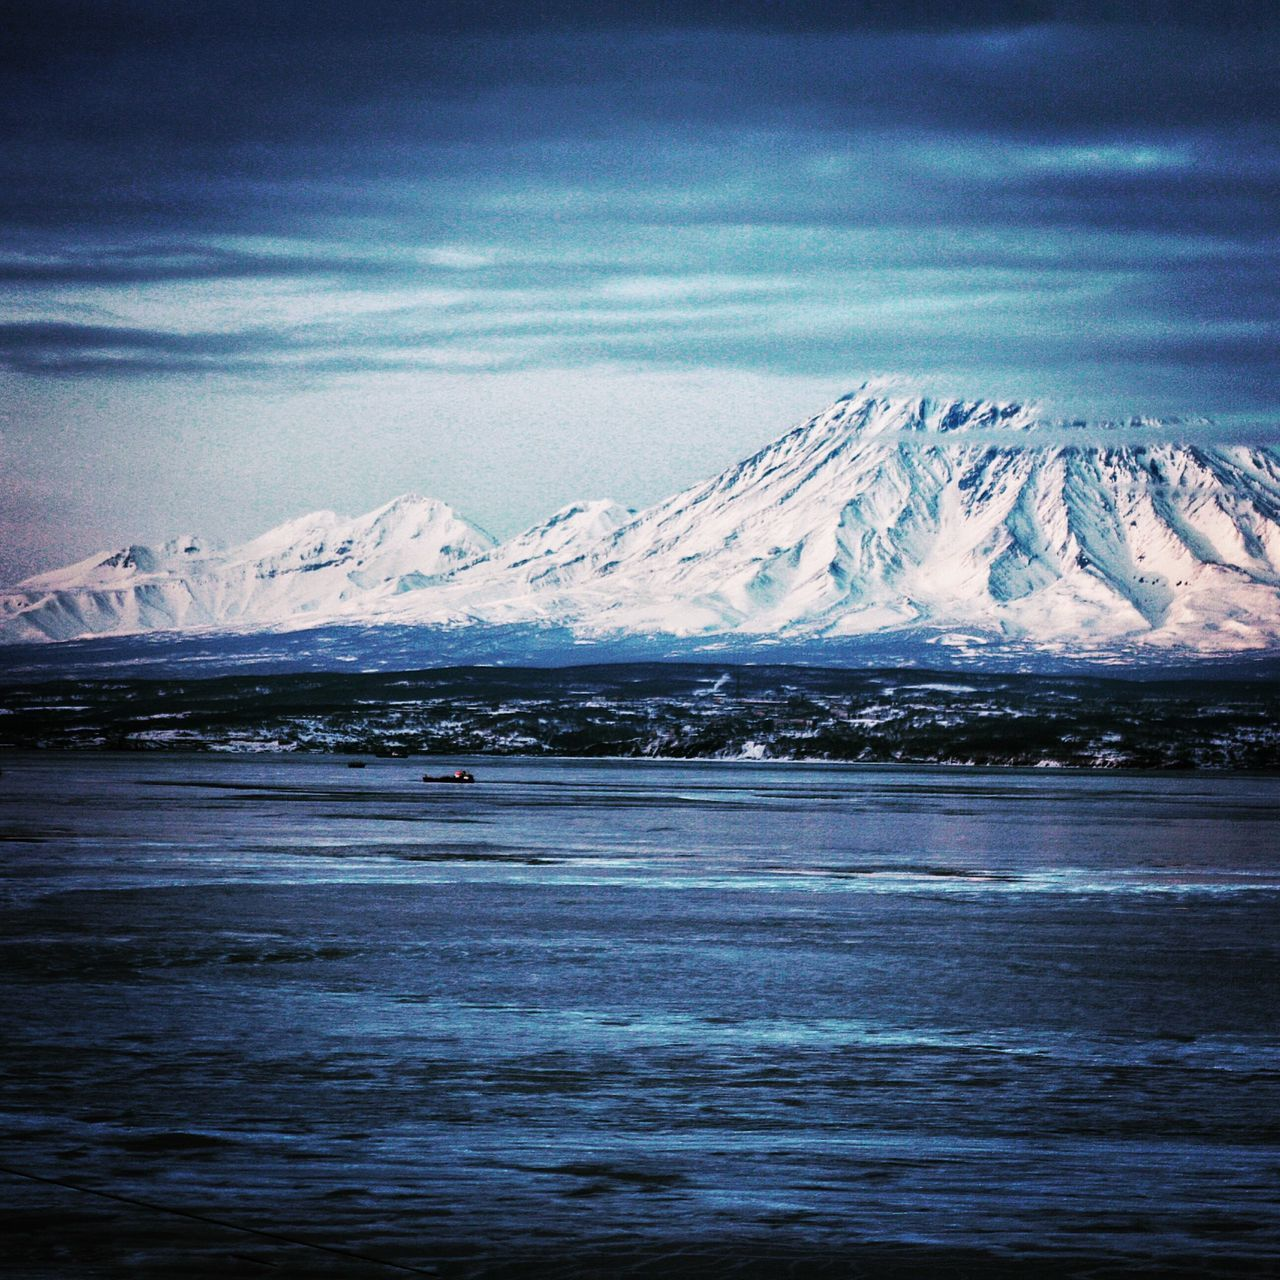 Kamchatka Russia Vilyuchinsk Volcano Volcanoes Volcanic Landscape Mountain Snow Cold Temperature Winter Season  Snowcapped Mountain Tranquil Scene Scenics Mountain Range Beauty In Nature Sky Cloud - Sky Cloud Non-urban Scene Waterfront Ocean Sea Ice Physical Geography